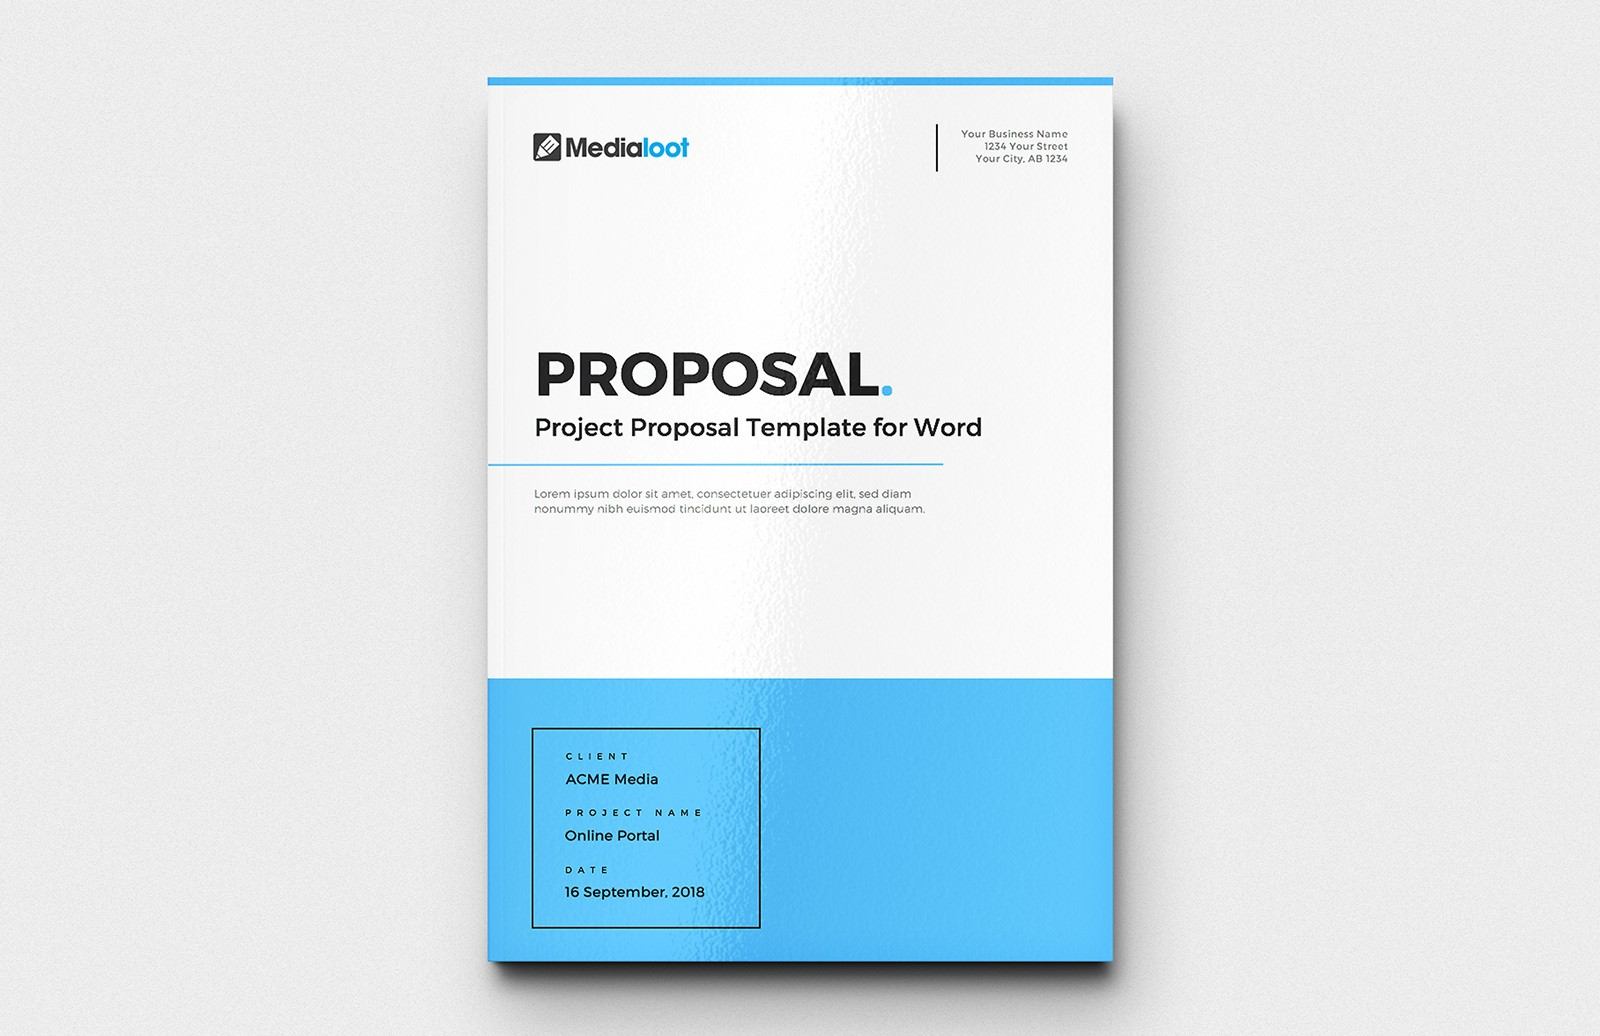 Project Proposal Template for Word